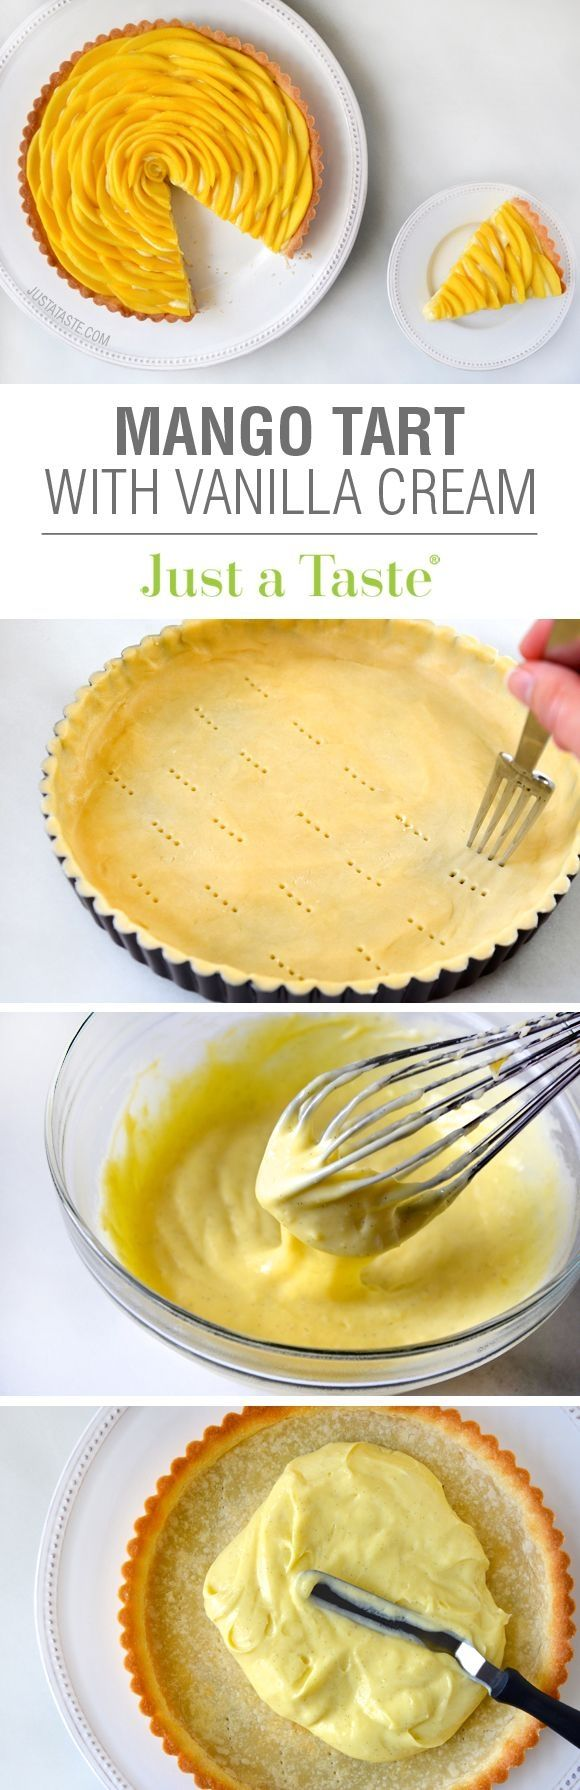 Mango Tart with Vanilla Bean Pastry Cream #recipe on justataste.com by Belen Balsera